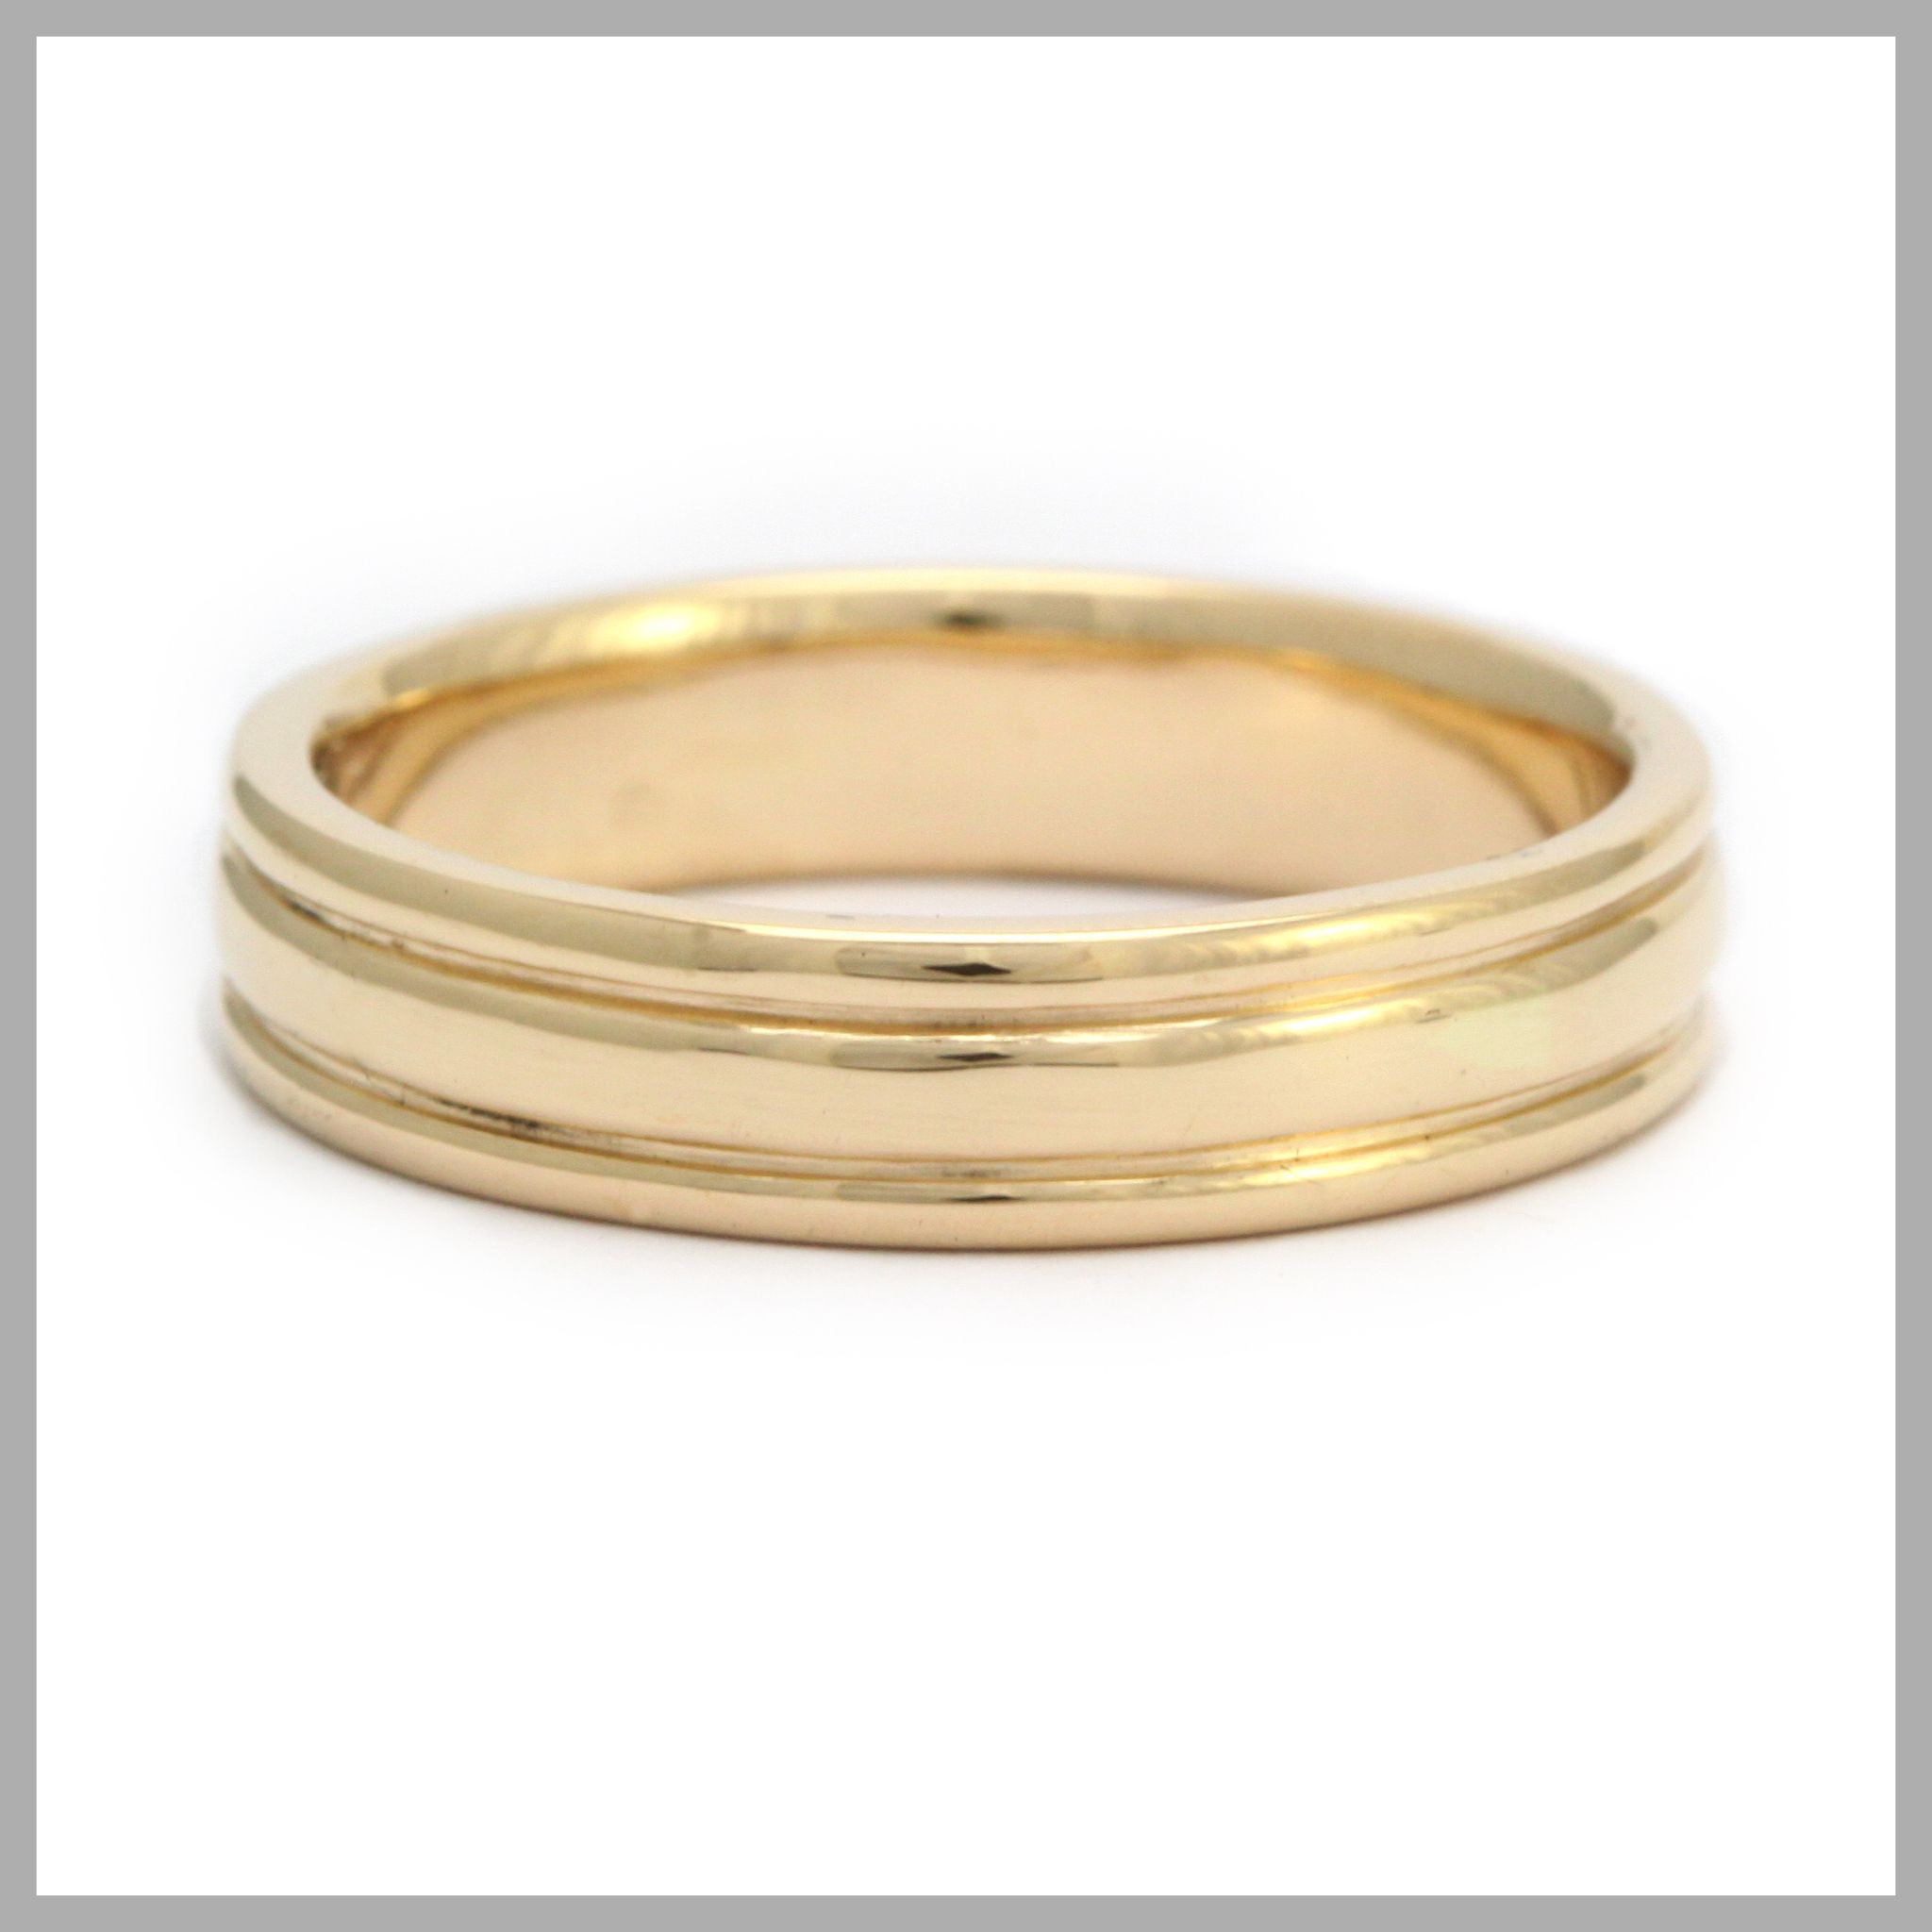 Grooved Ring Handmade Bespoke Gold Platinum Palladium Contemporary Wedding Band